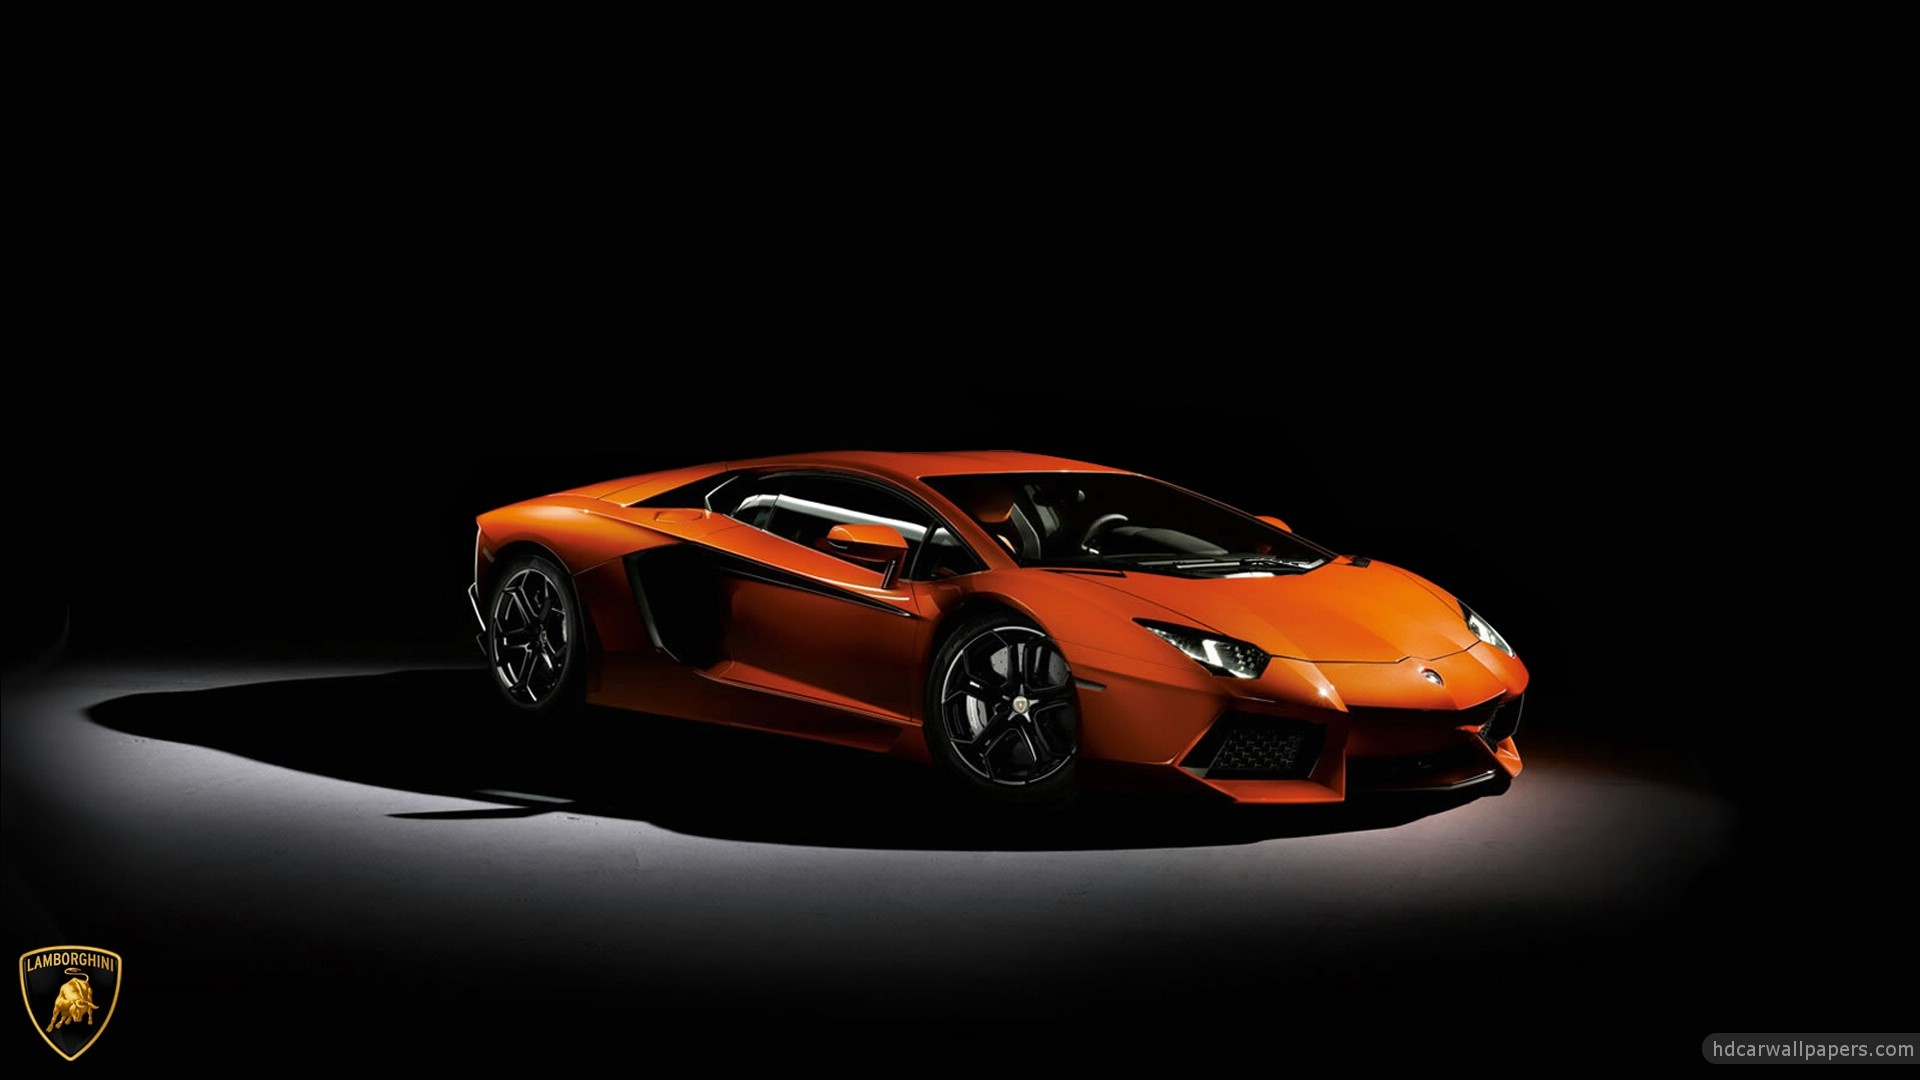 Lamborghini Aventador HD Wallpaper in 1920x1080 Resolution